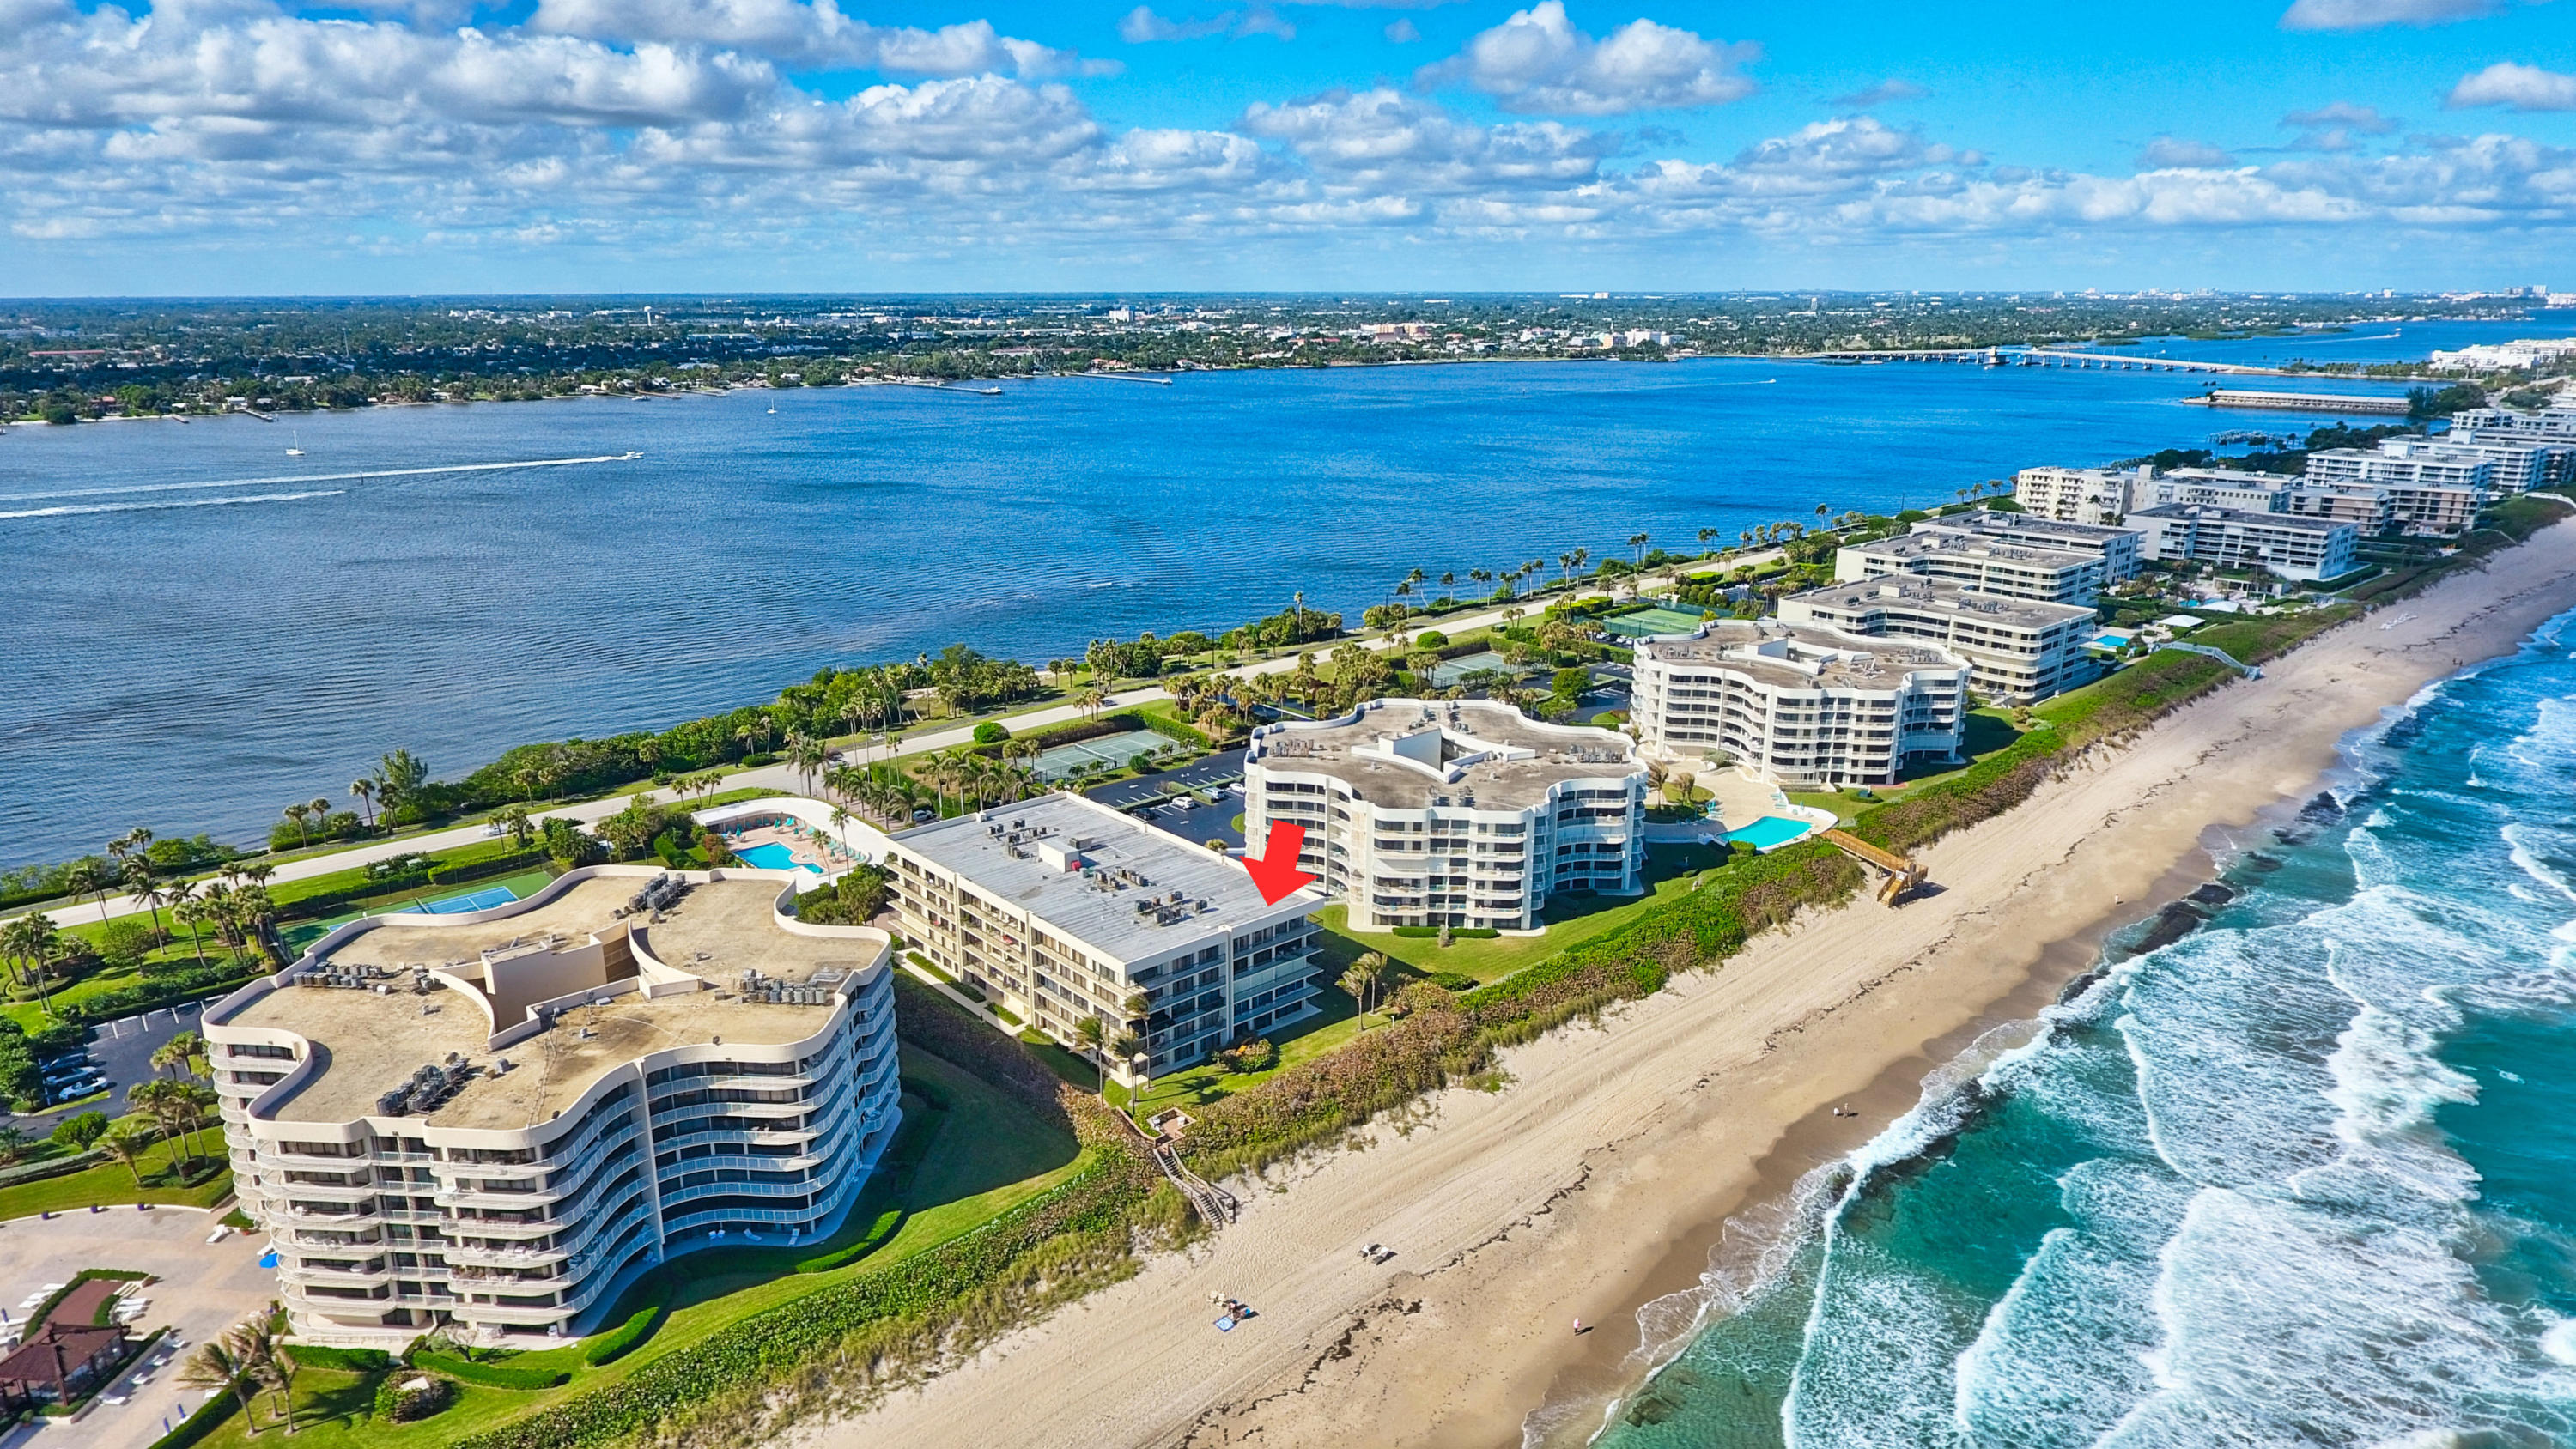 Schedule your tour of this elegant oceanfront residence with 3 bedroom suites, 3 full baths, in boutique style building a short distance to prestigious Four Seasons resort and the Eau Spa, close to the airport, shopping, short distance to Palm Beach center. Enjoy breathtaking direct ocean views from every room, views of the intracoastal, and alluring sunsets.  With large wraparound terrace it is deal for entertaining. This residence boasts doorman/concierge service, security, extra storage, assigned garage parking, PRIVATE POOL-CABANA, state of the art gym, beach access, floor to ceiling windows and more.  This resort style living awaits you.